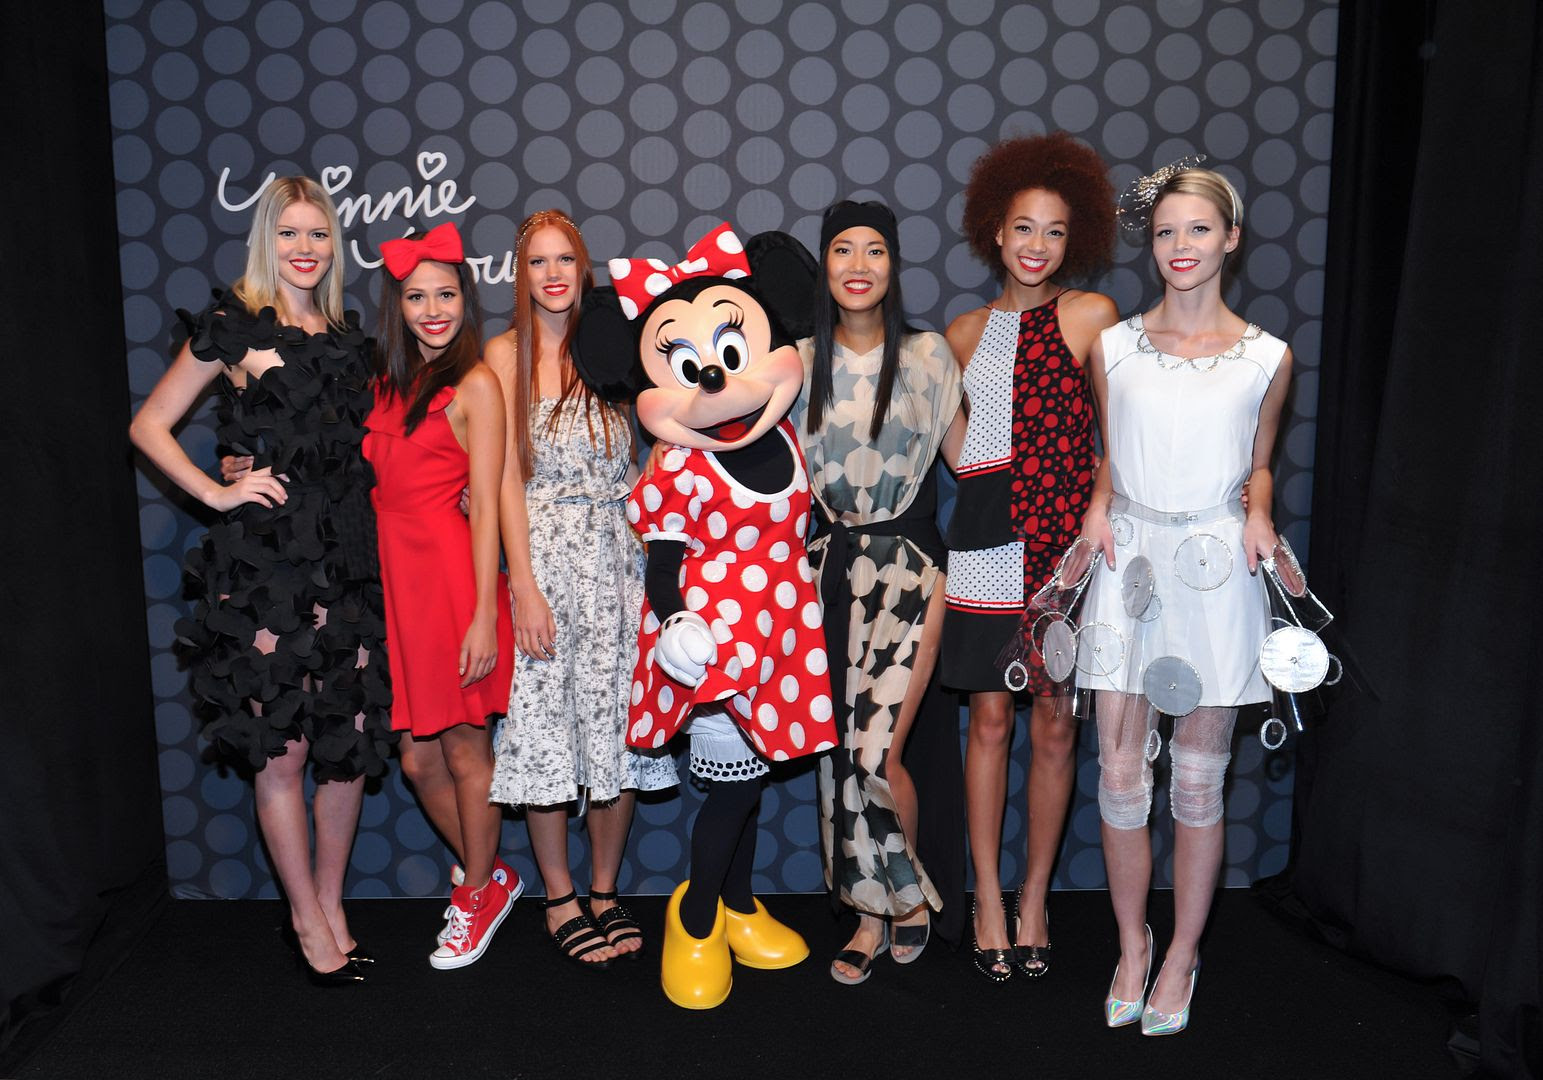 photo minniestyle-minniemouse-disney-beckermanblog-cailliandsambeckerman-disney-worldmastercardfashionweek-toronto-21_zps22da7256.jpg